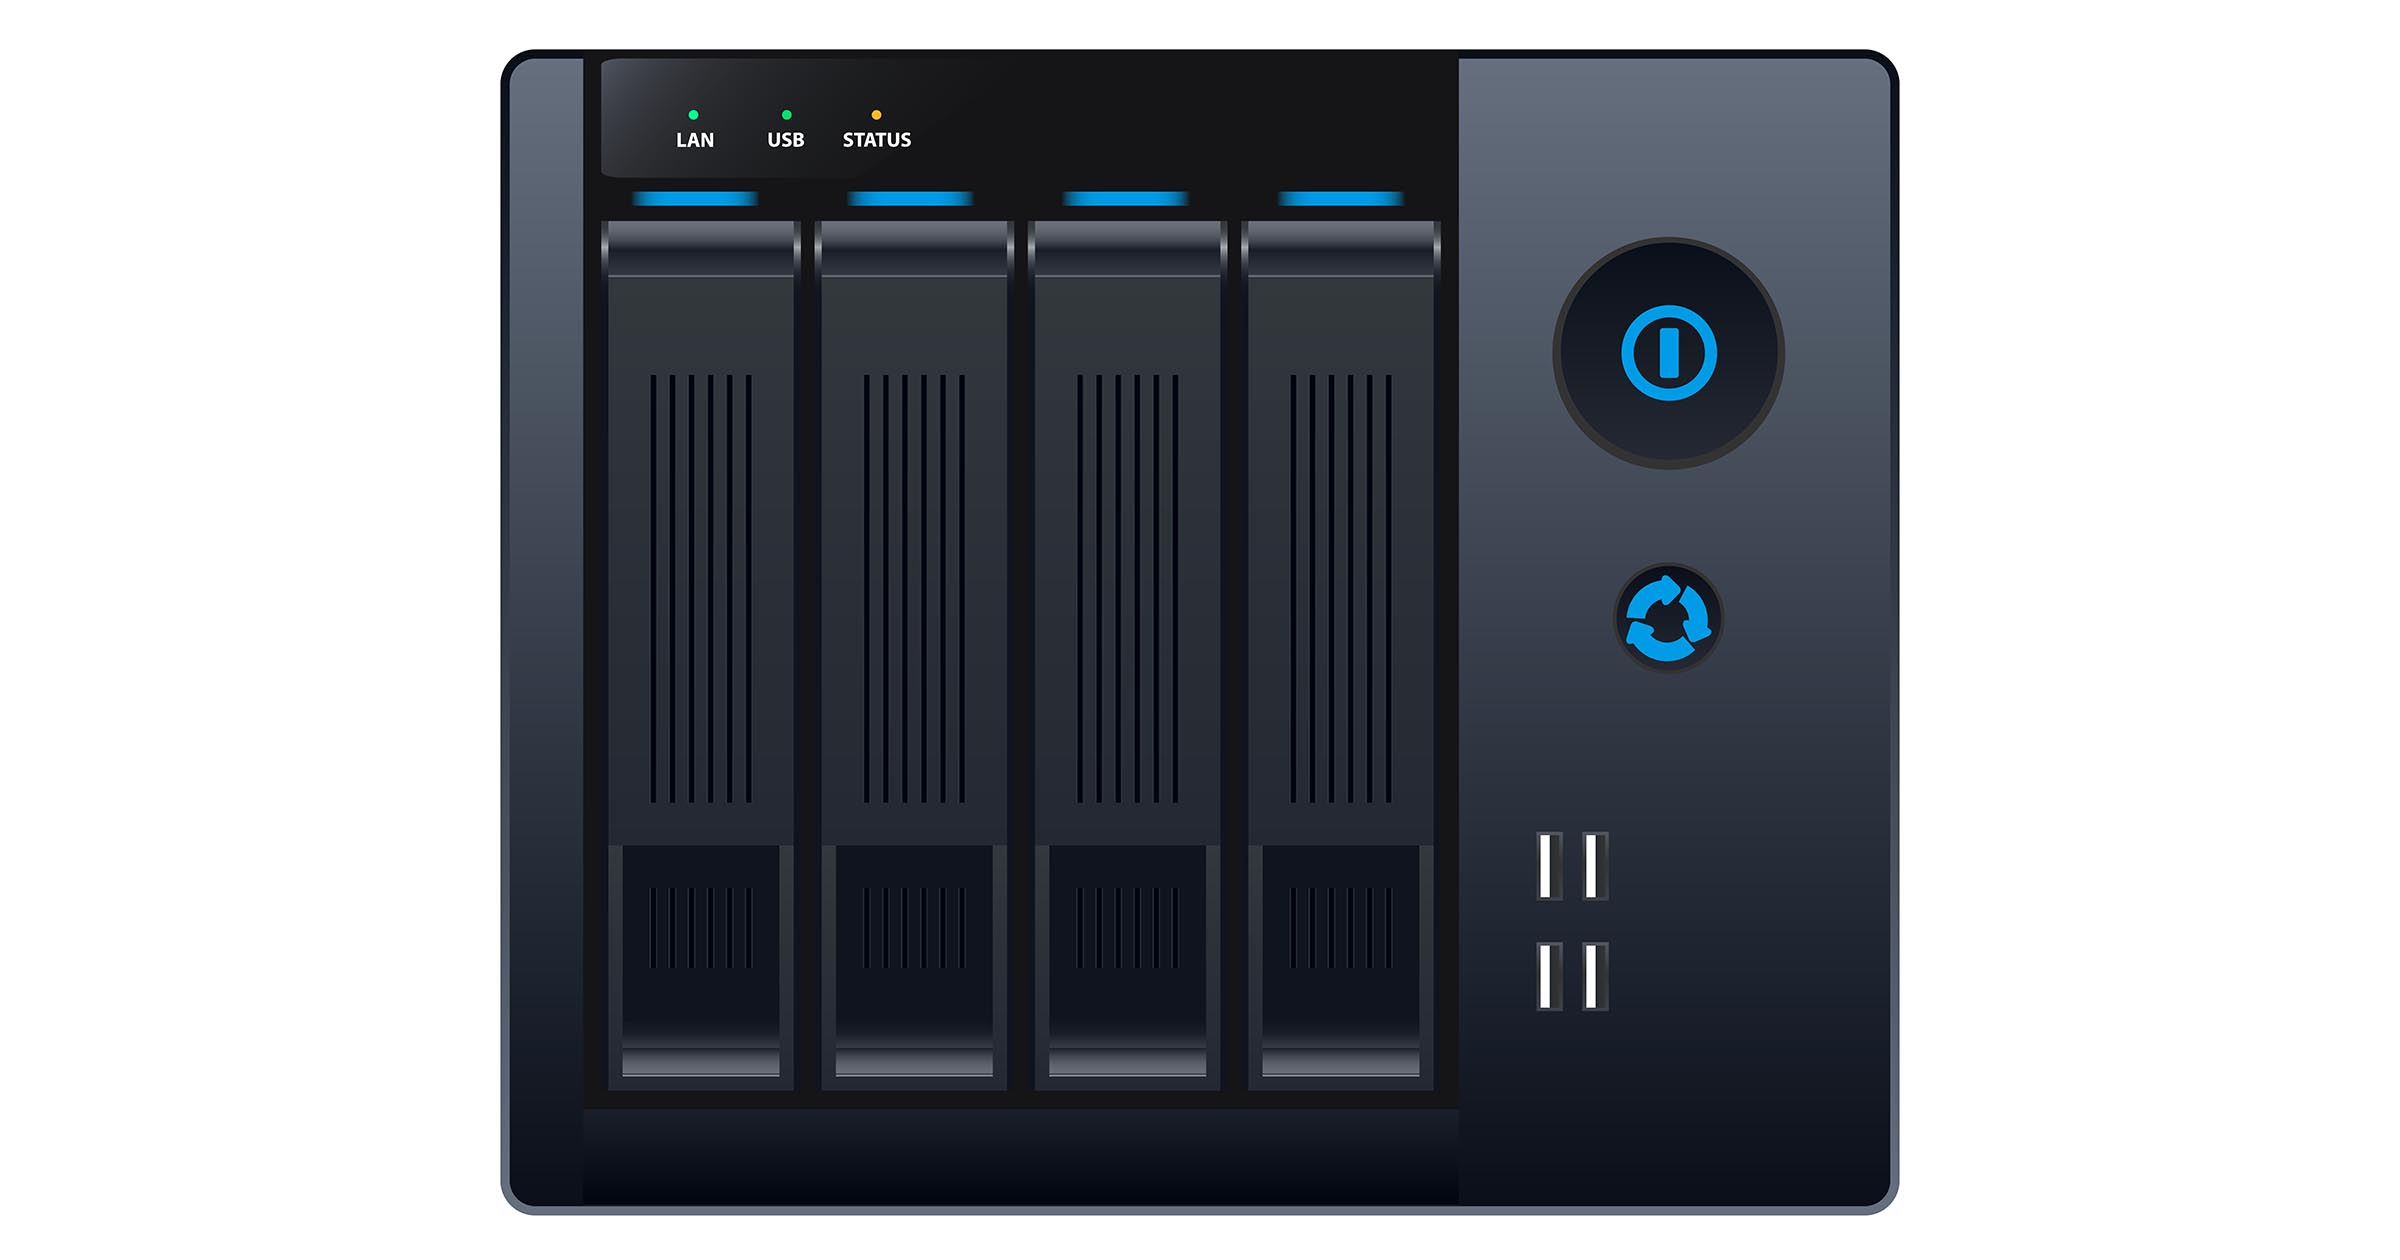 NAS -- Network Attached Storage